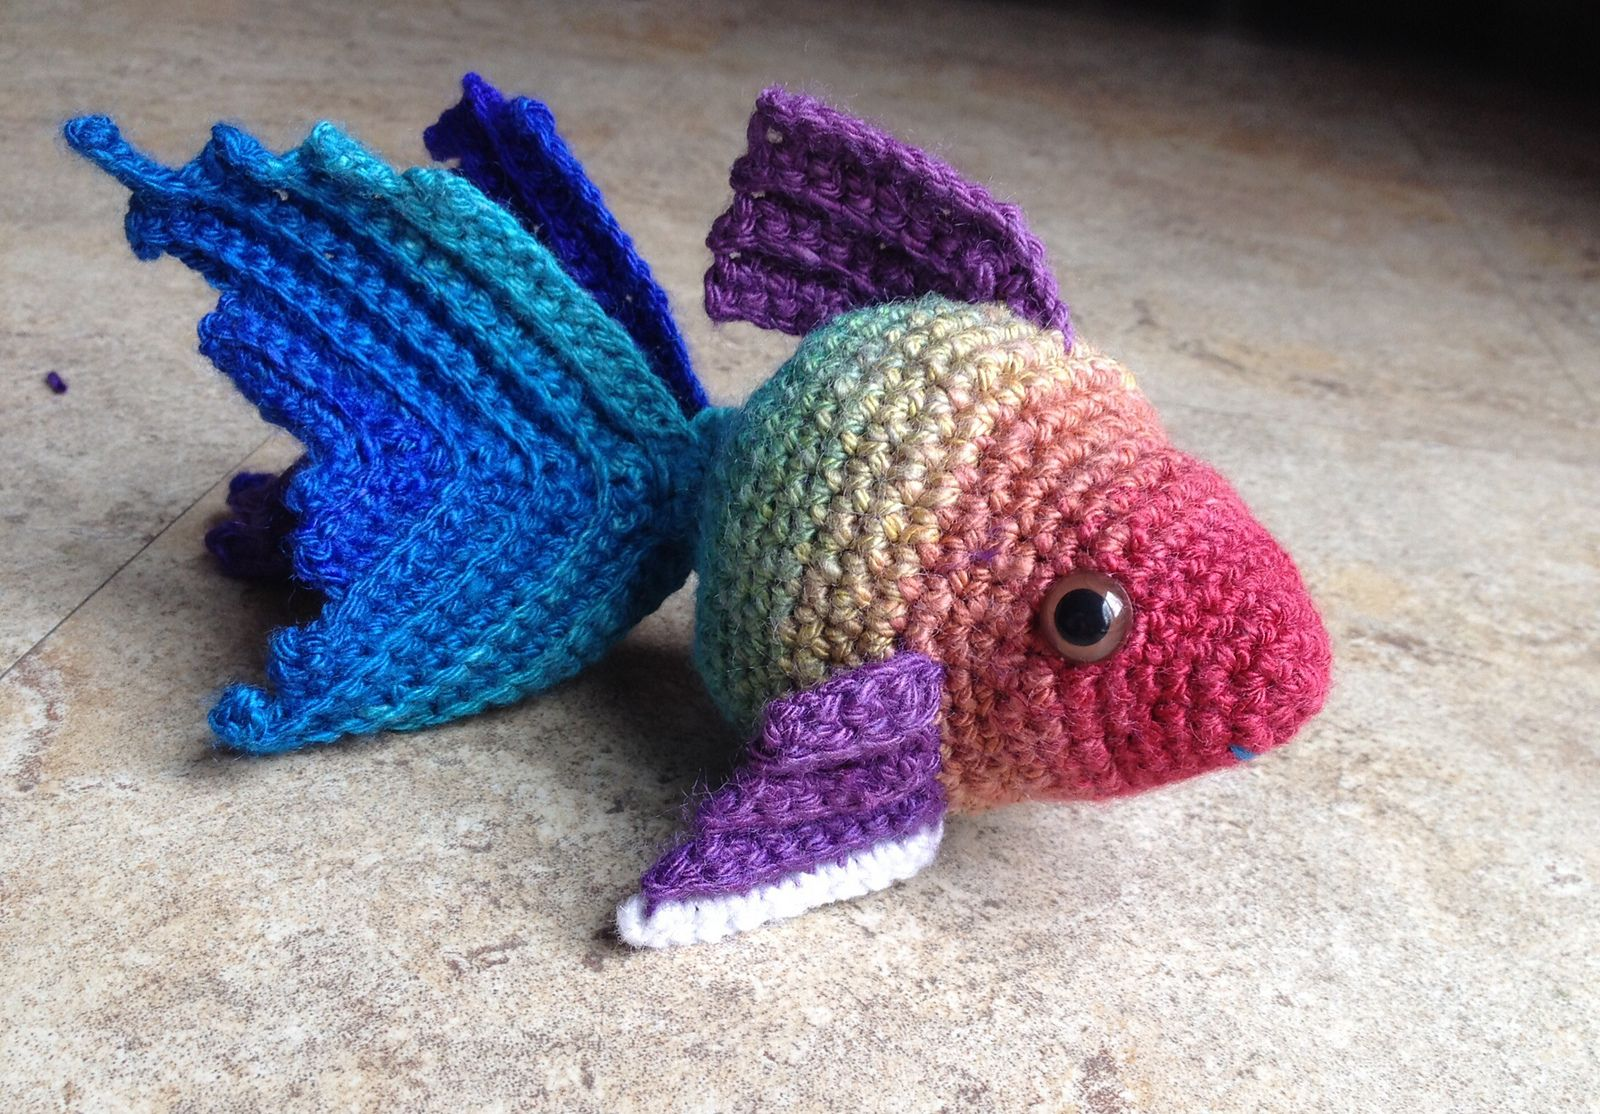 Pin de Mar Pope en Crocheting | Pinterest | Tejido, Ganchillo y ...